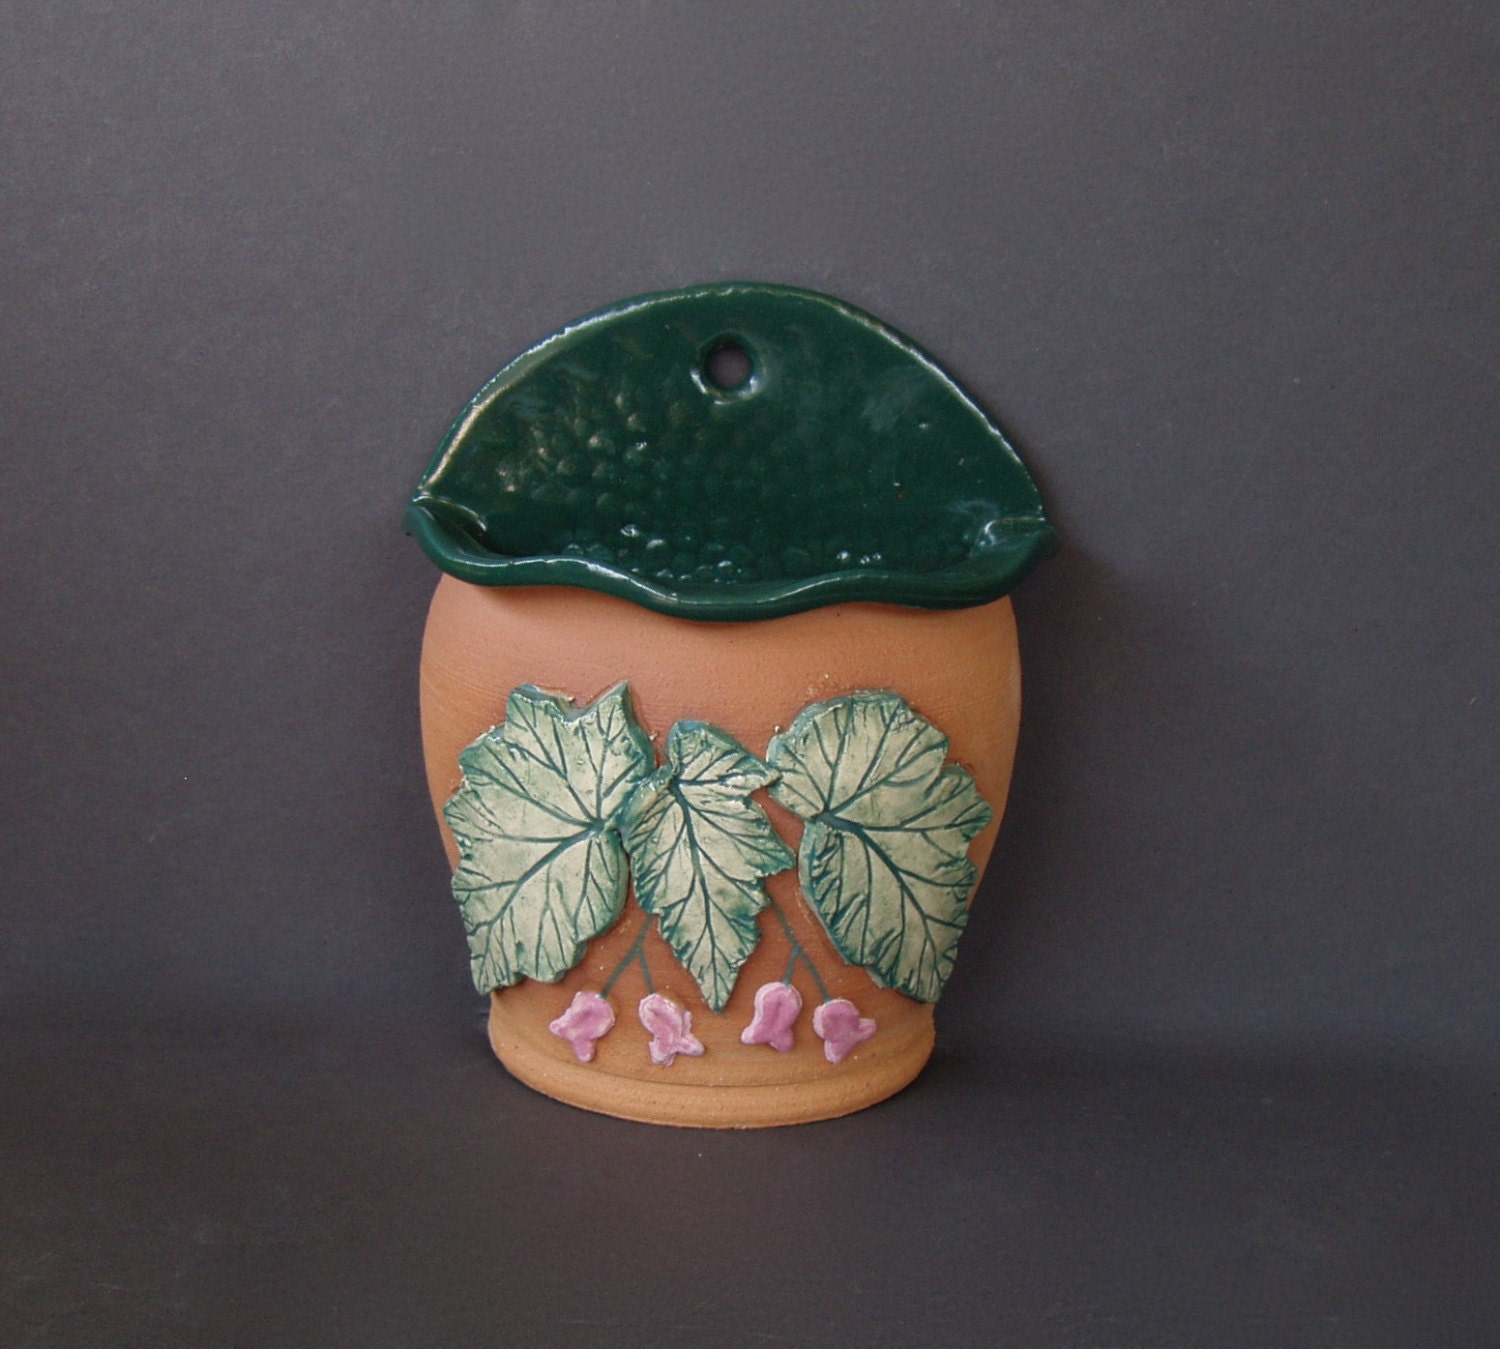 Begonia Pottery Flower Pot Outdoor Ceramic Wall Planter